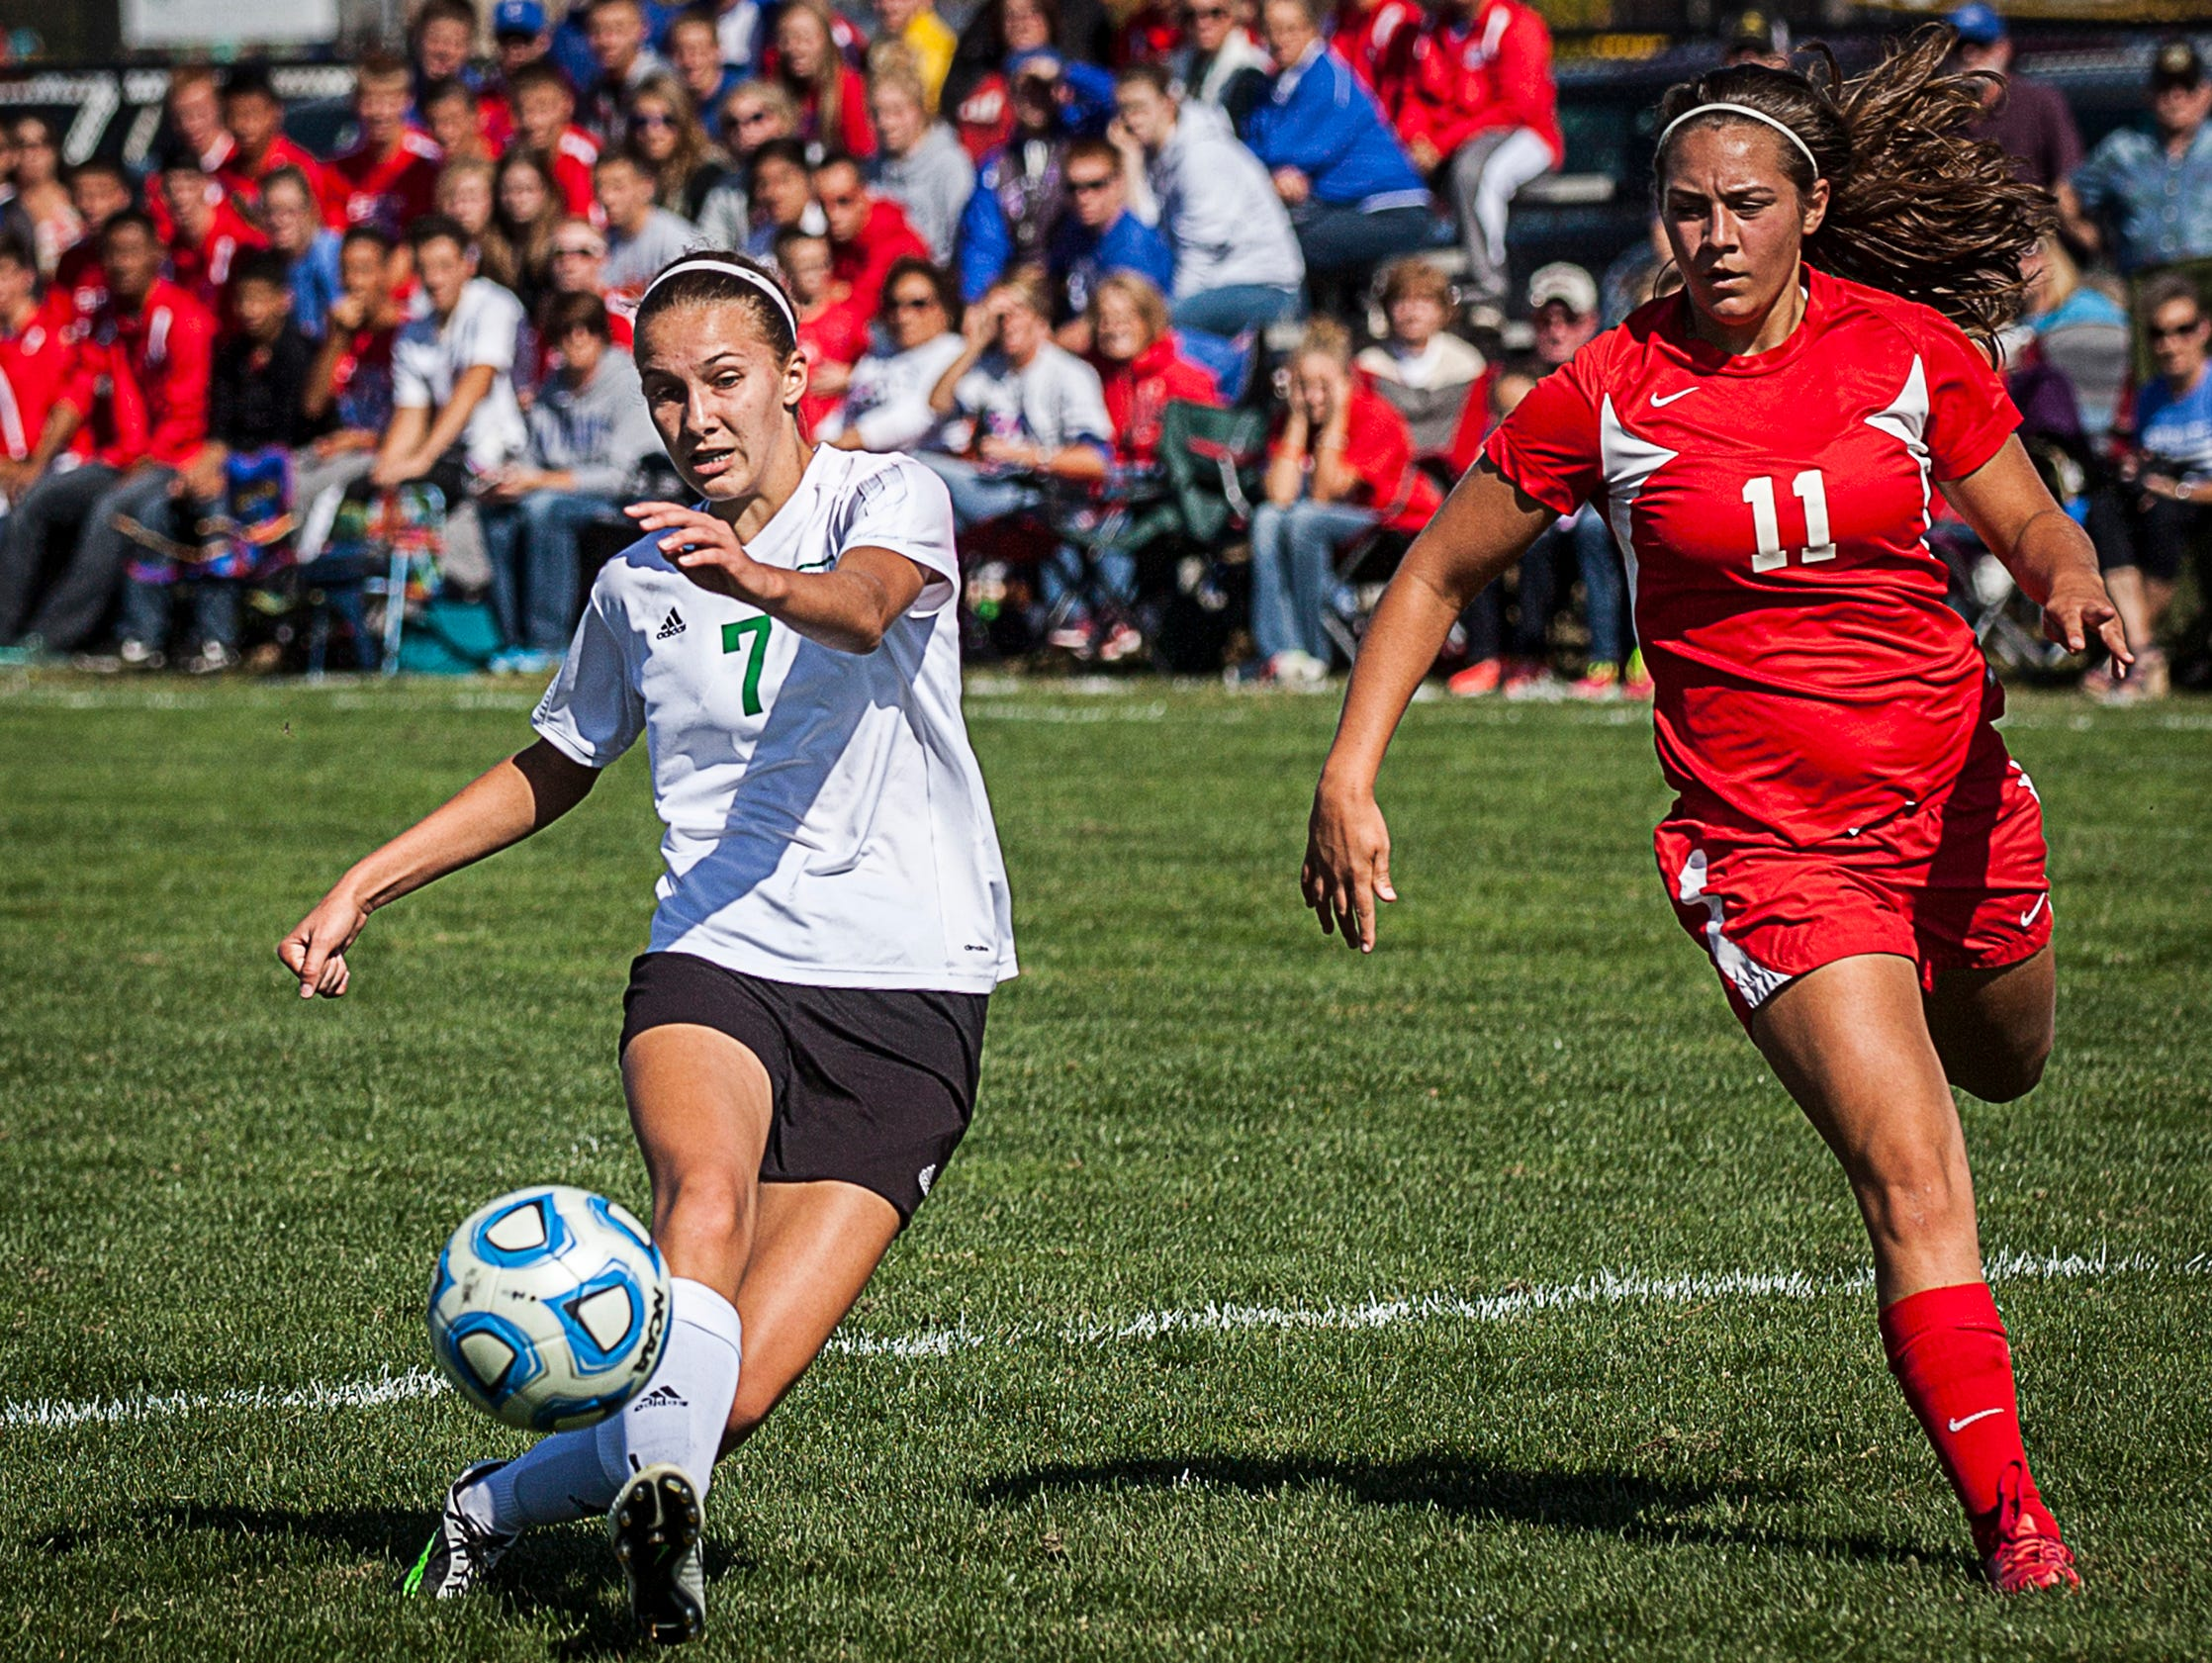 Yorktown's Hannah Rapp takes a shot past Jay County's Emily Muhlenkamp during their game at the Yorktown Sports Park on Saturday, Oct. 10, 2015.